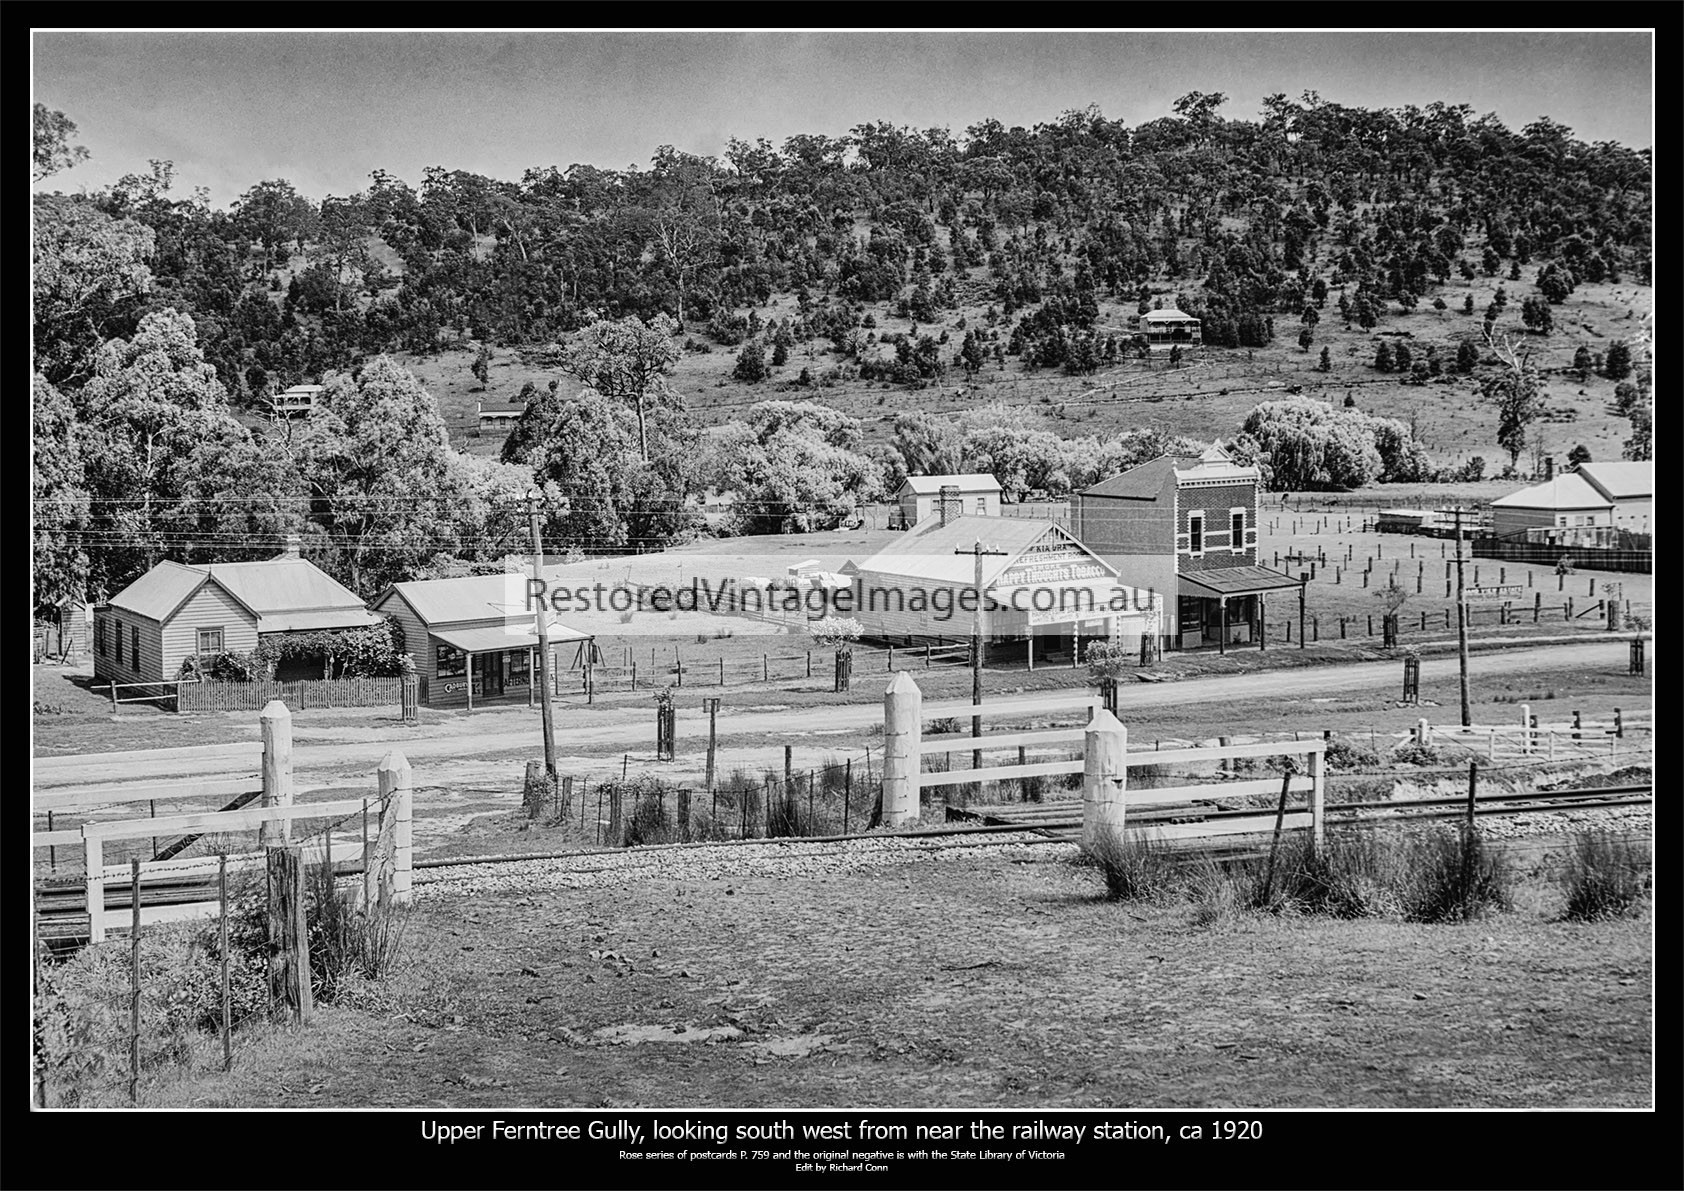 Upper Ferntree Gully, Looking South West Near The Railway Station